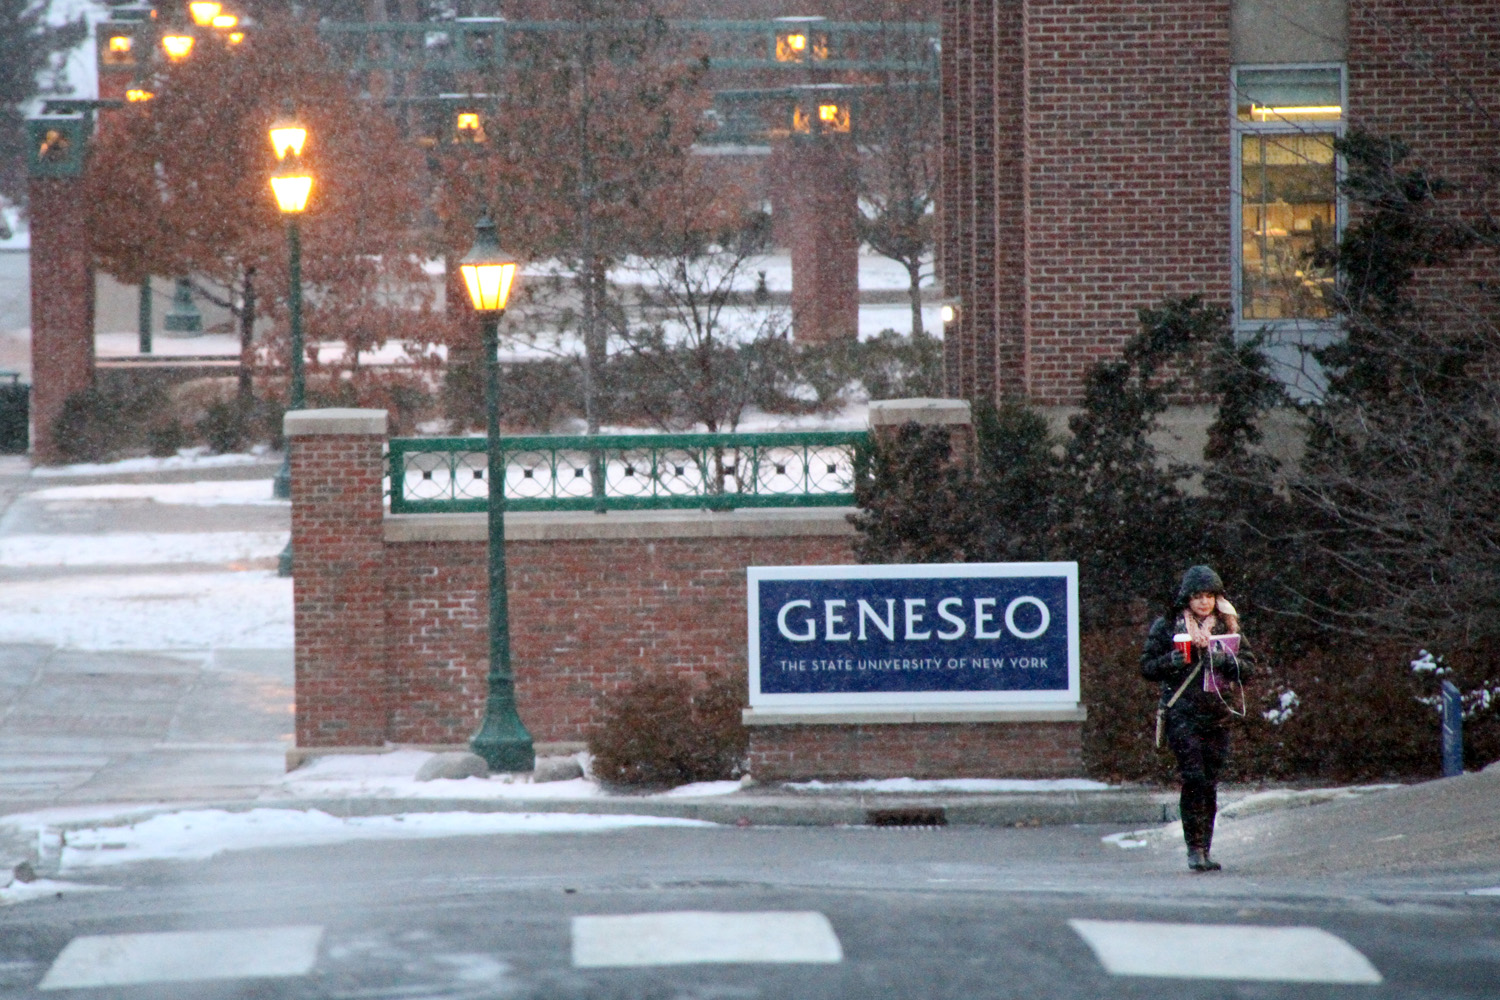 County and Campus Offer Condolences and Services to Geneseo